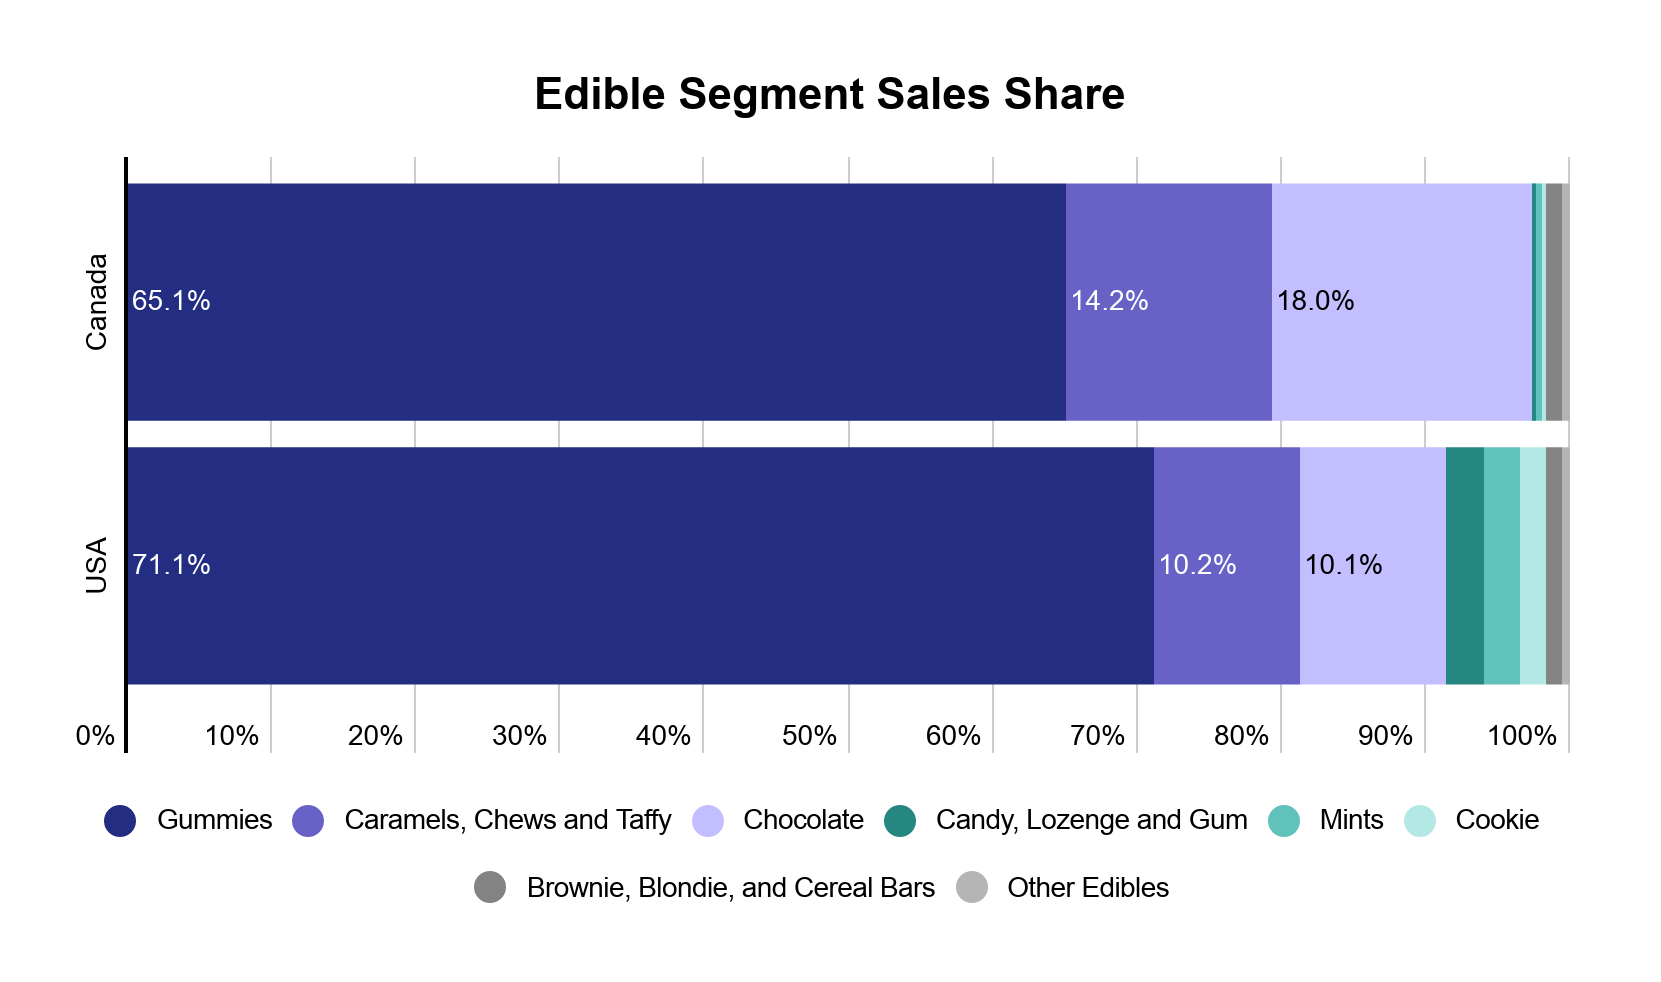 Cannabis edibles data & performance image 5: Cannabis edible segment sales in the US and Canada